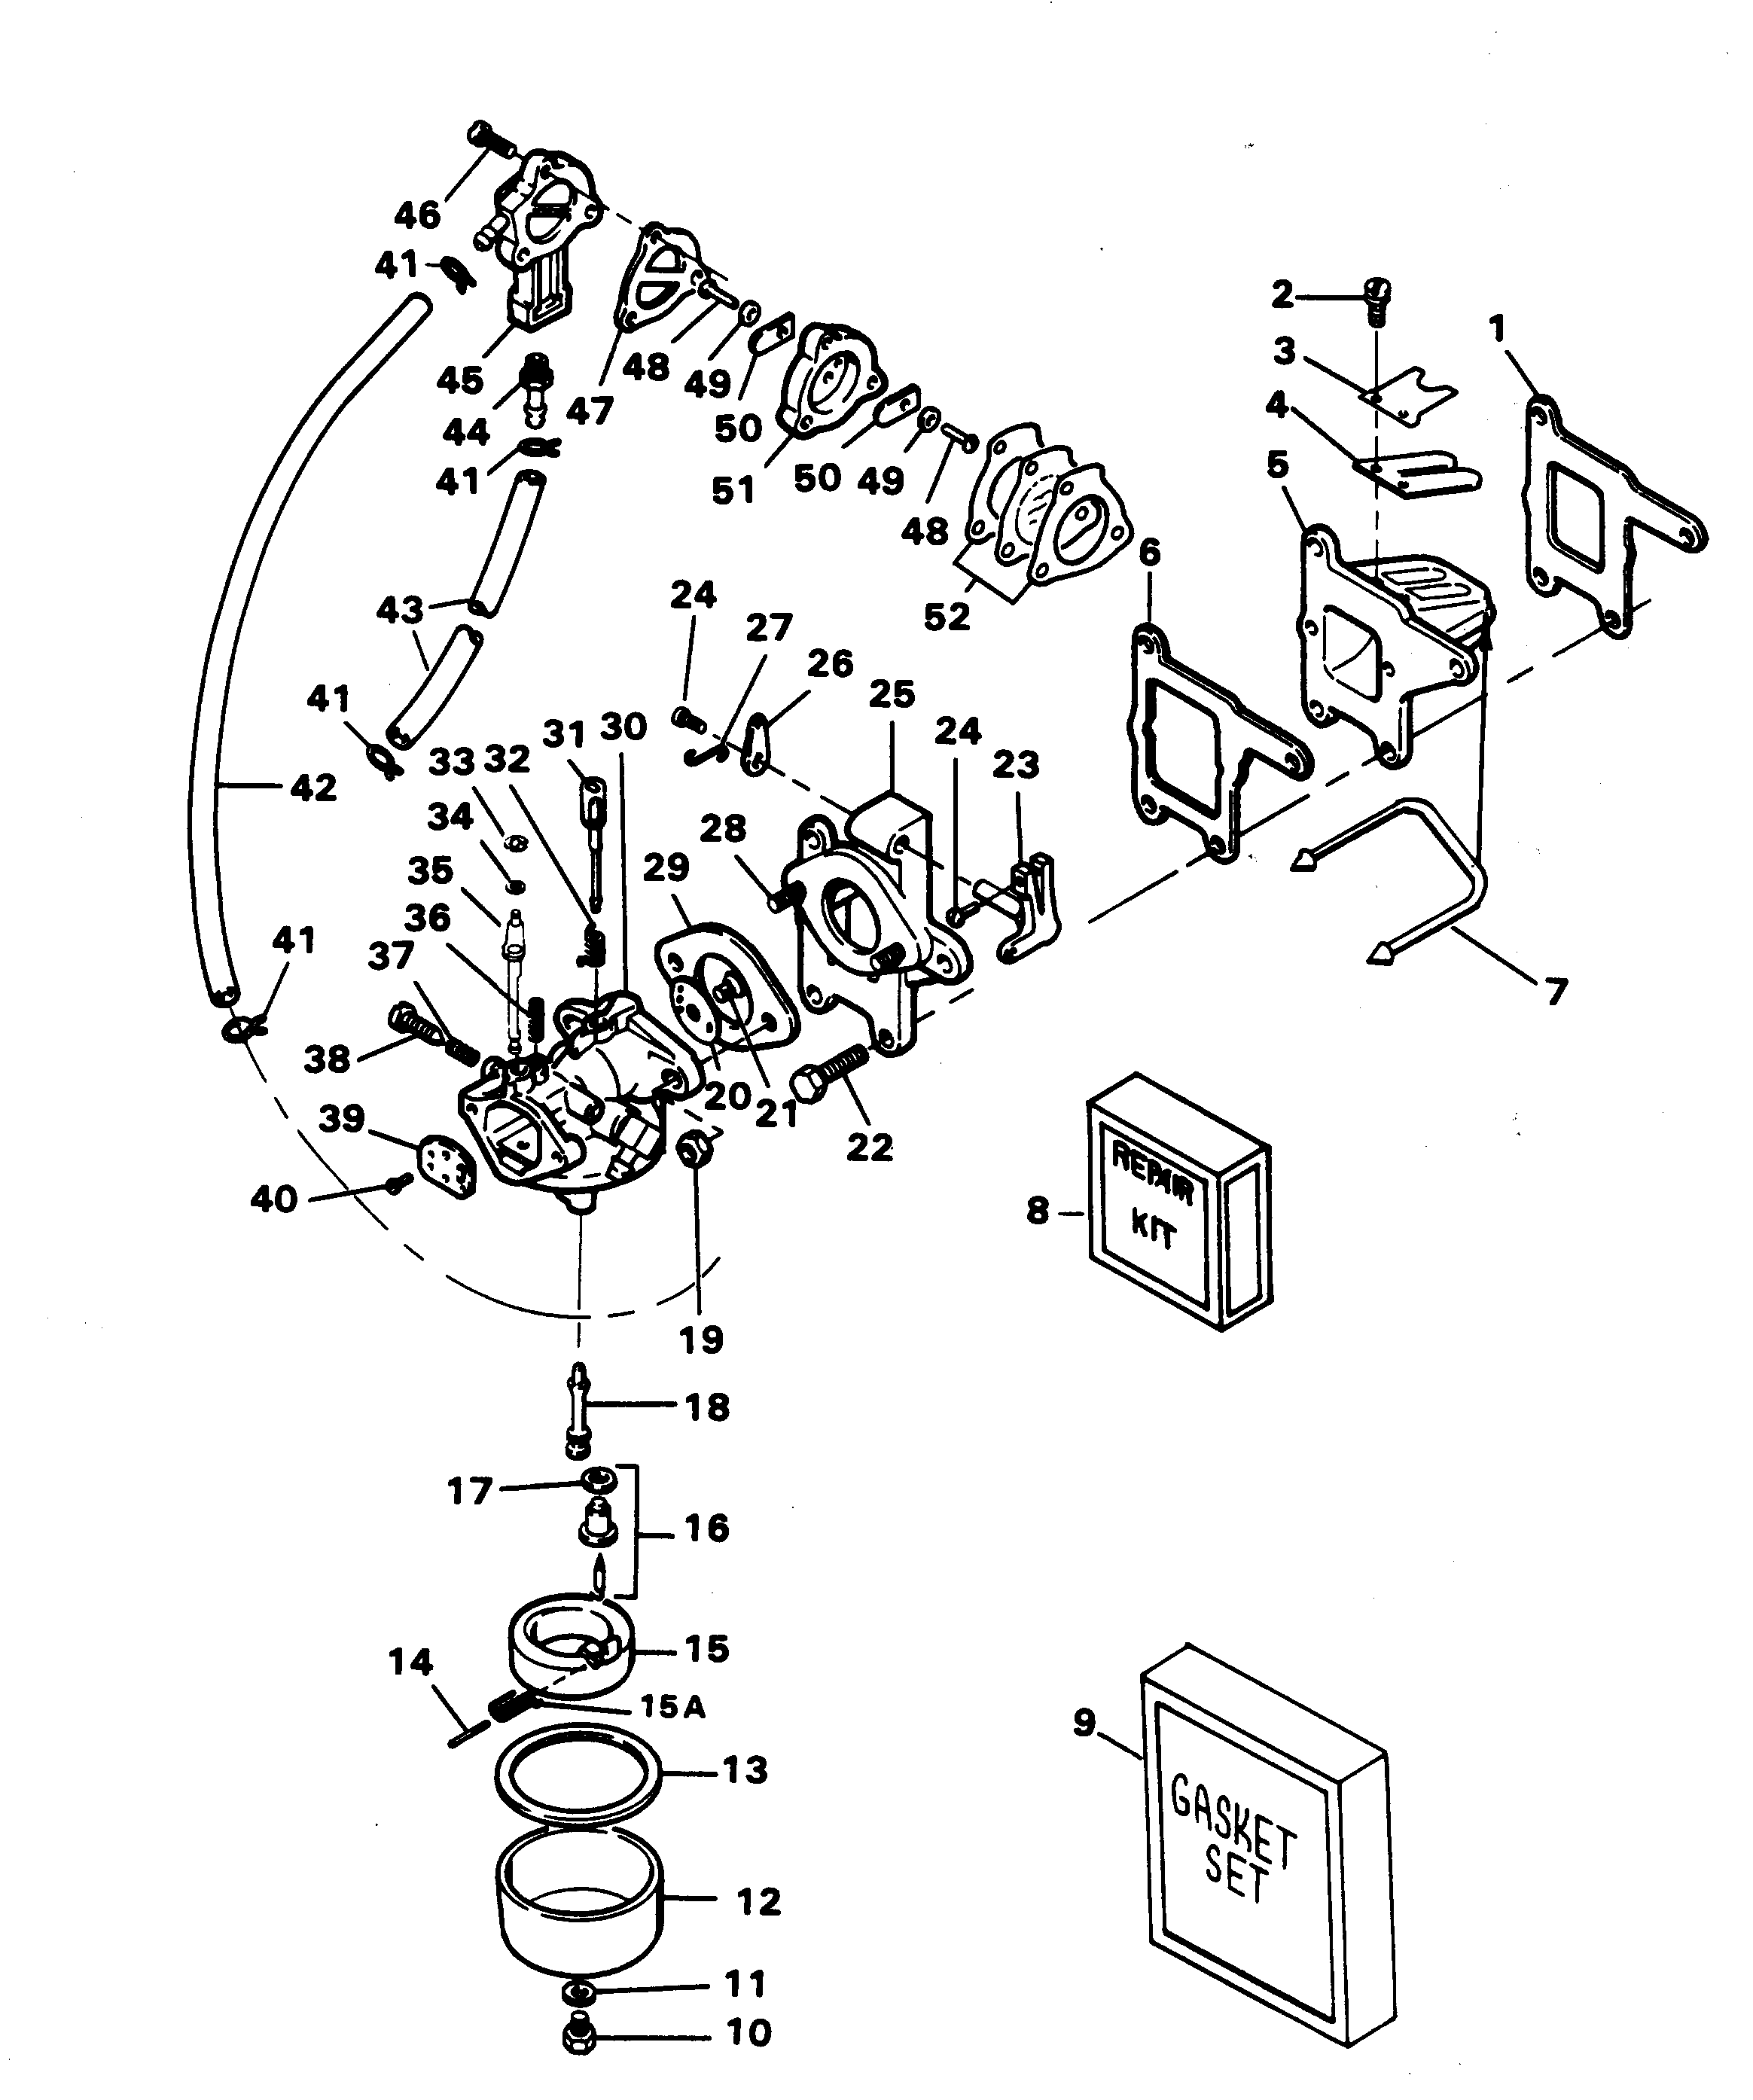 1987 force 125 outboard engine diagram 125 mercury